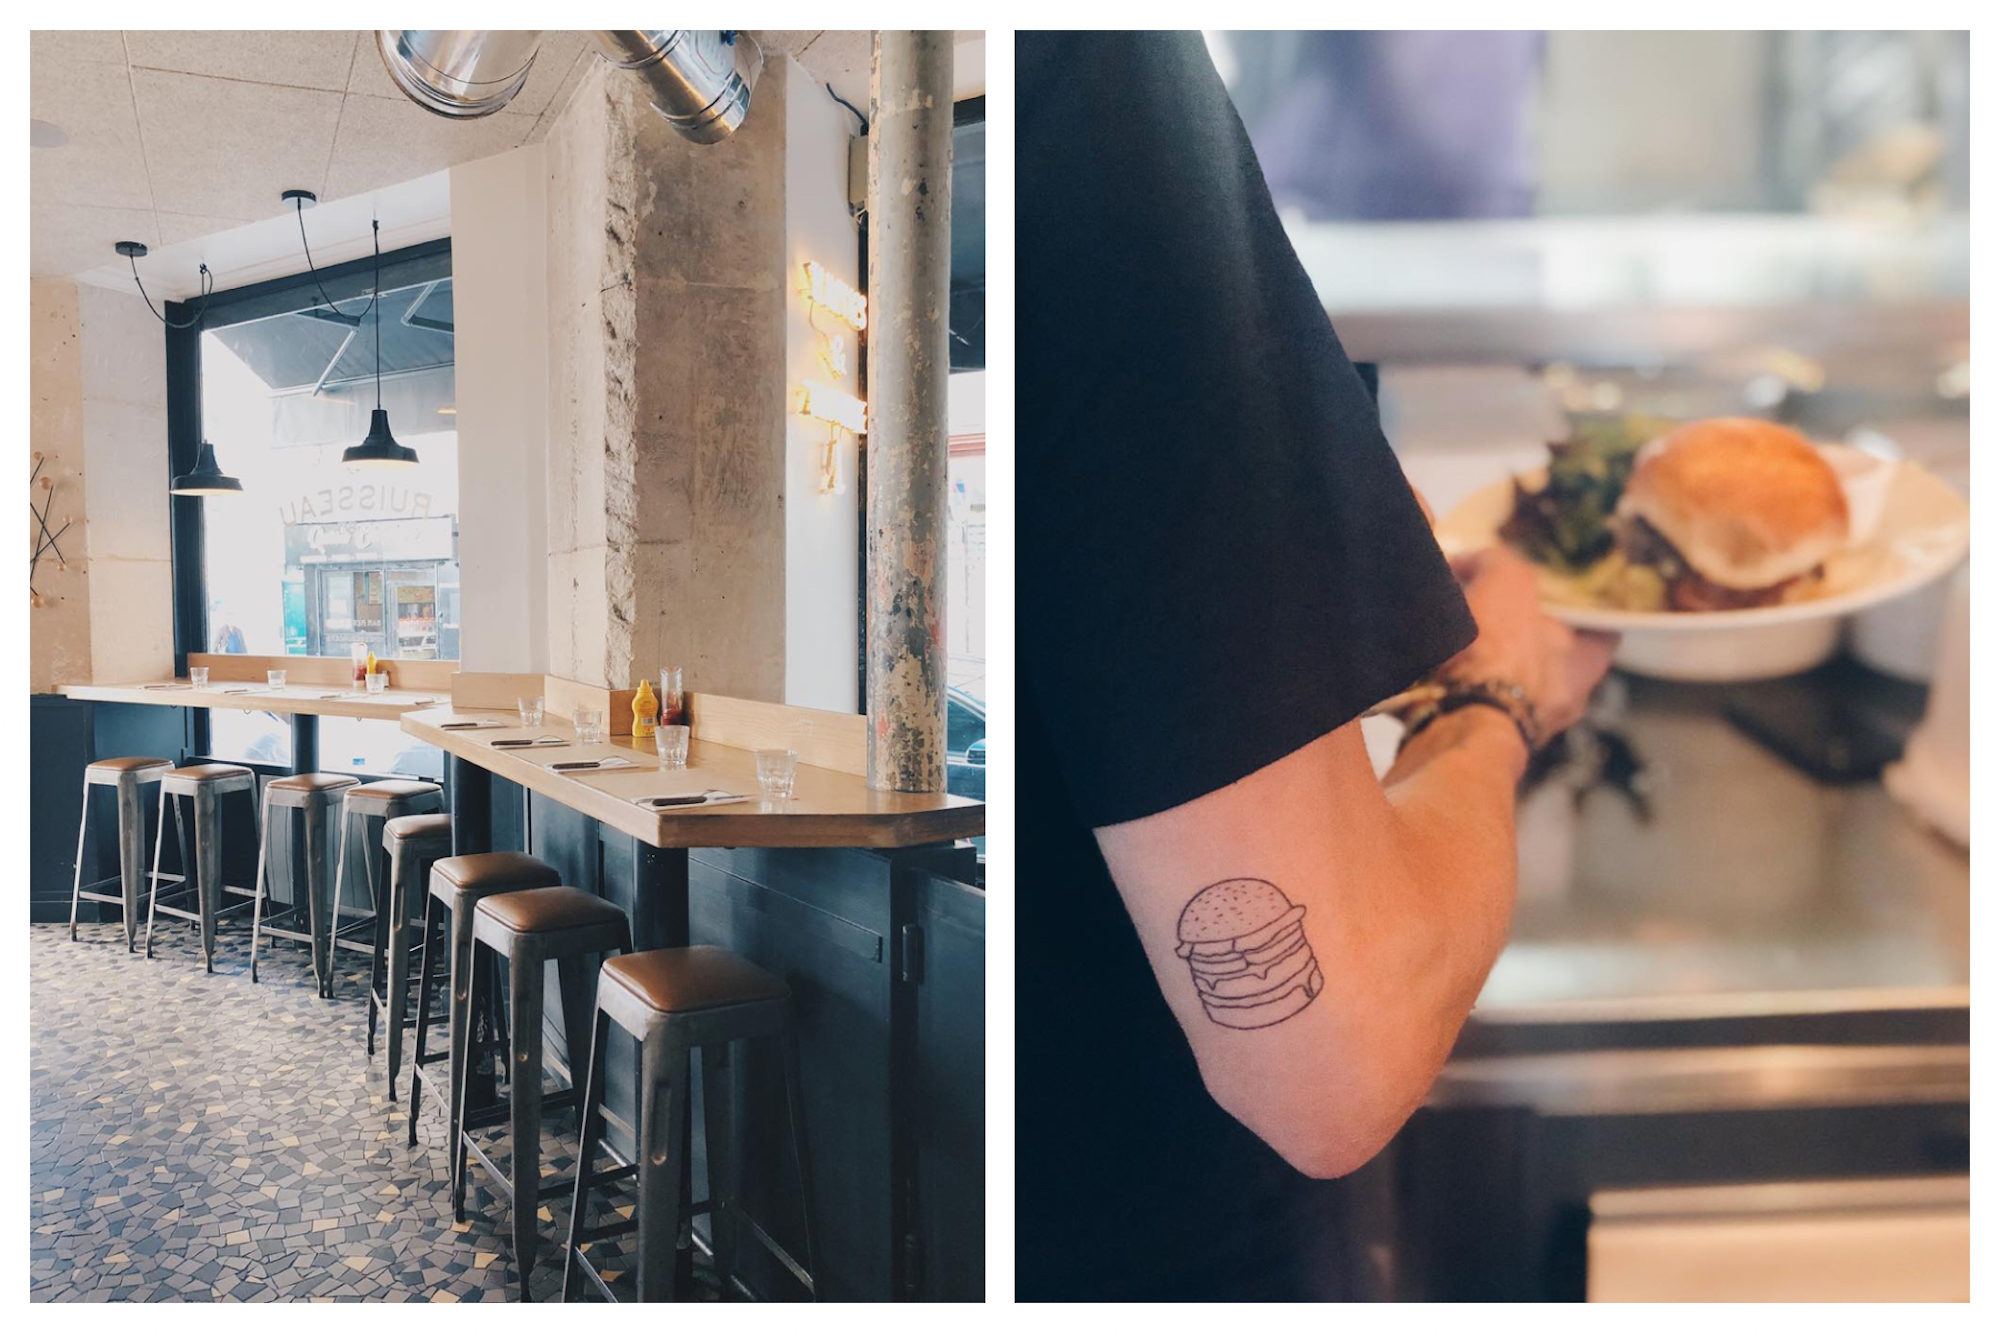 One of the best places to go for a burger in Paris is Le Ruisseau in the 18th neighborhood, which comes with exposed plaster walls, timber furniture and tiled floors (left). The staff at Le Ruisseau burger joint in Paris even come with burger tattoos like this waiter holding a burger on a plate (right).